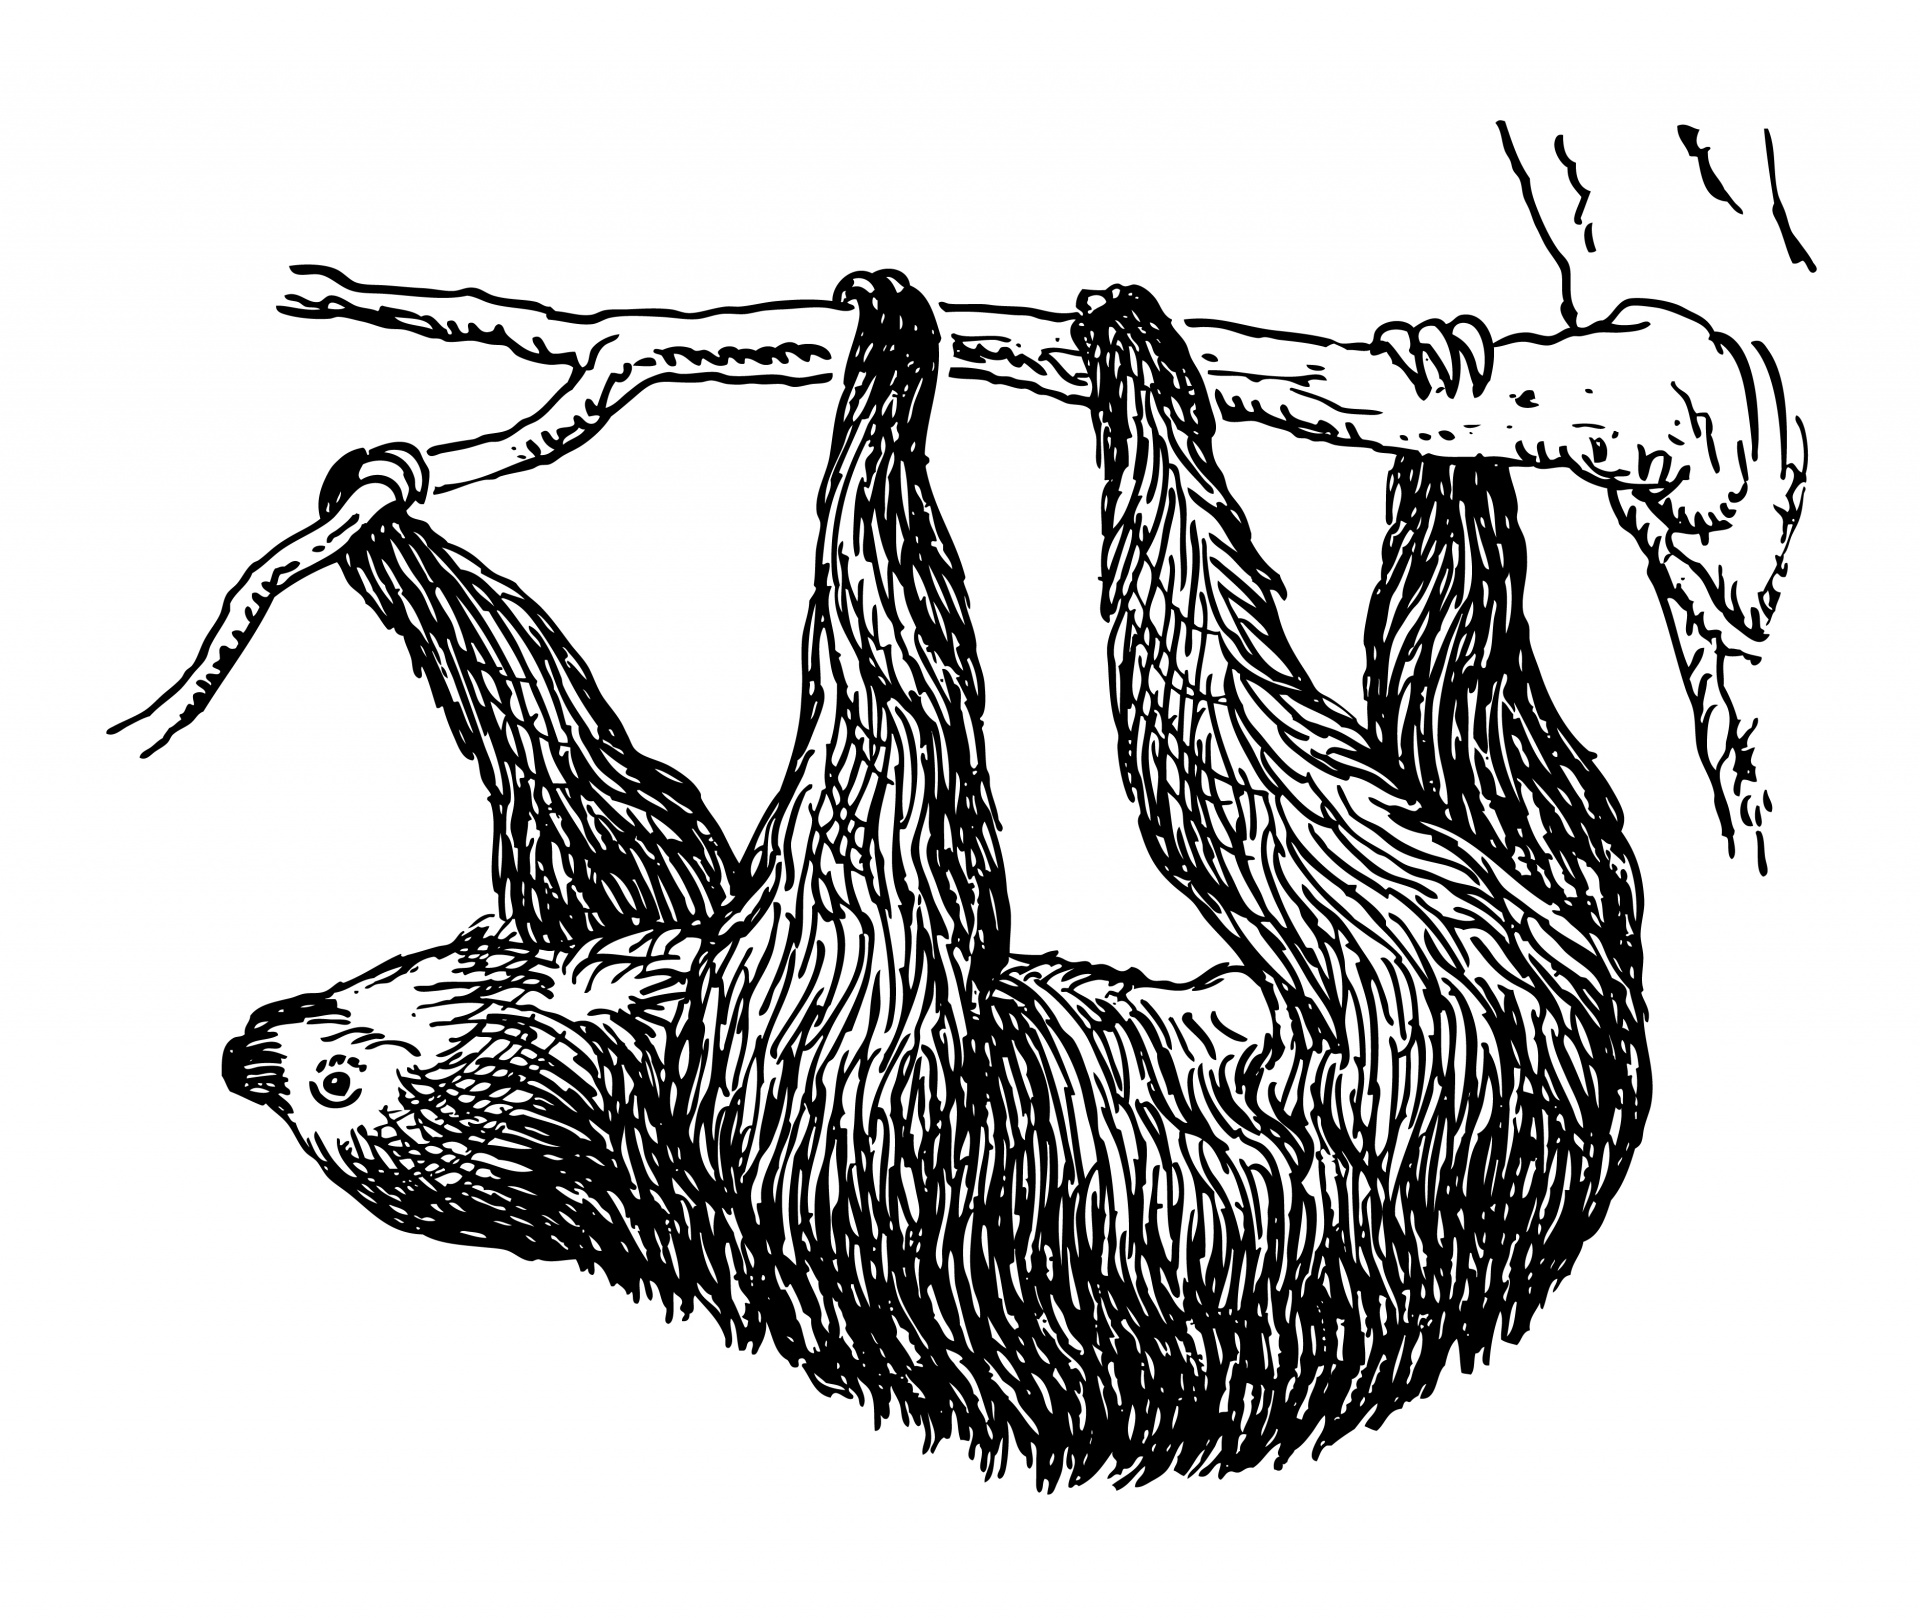 Sloth clipart. Illustration free stock photo graphic stock